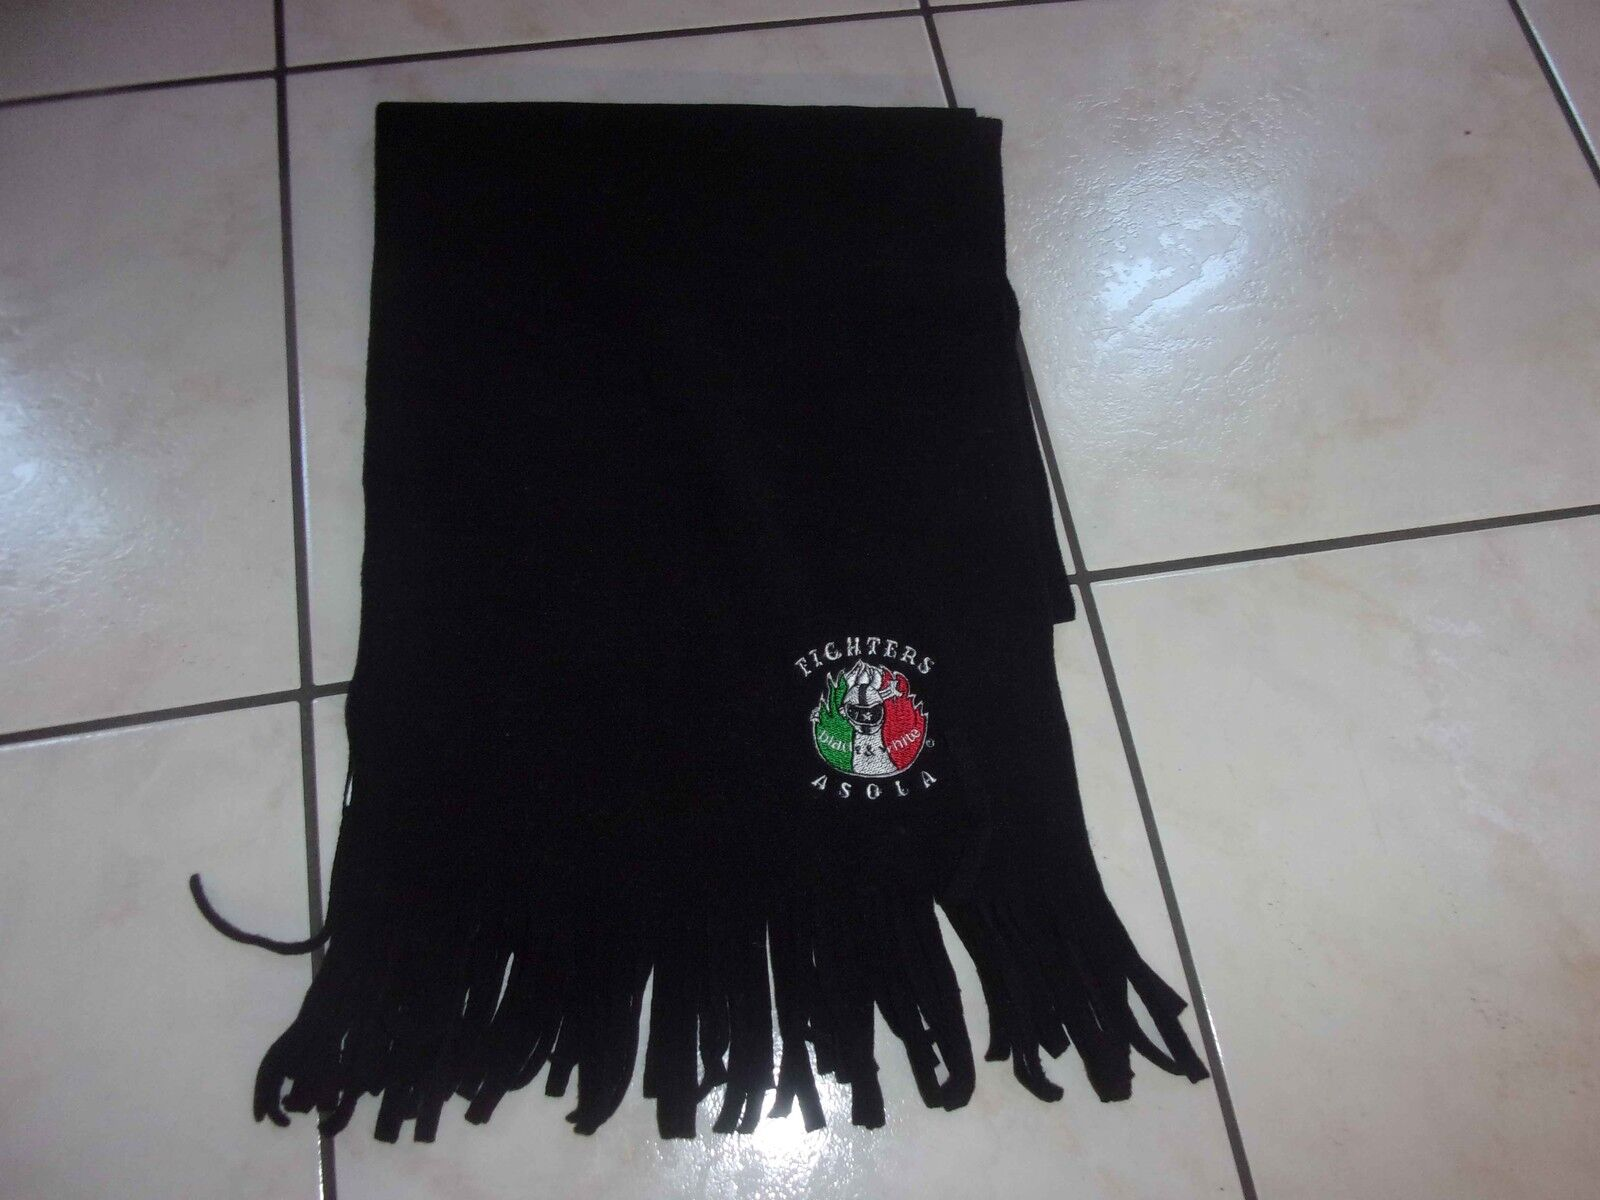 SCIARPE SCARF ULTRAS JUVENTUS FIGHTERS JUVENTUS ASOLA